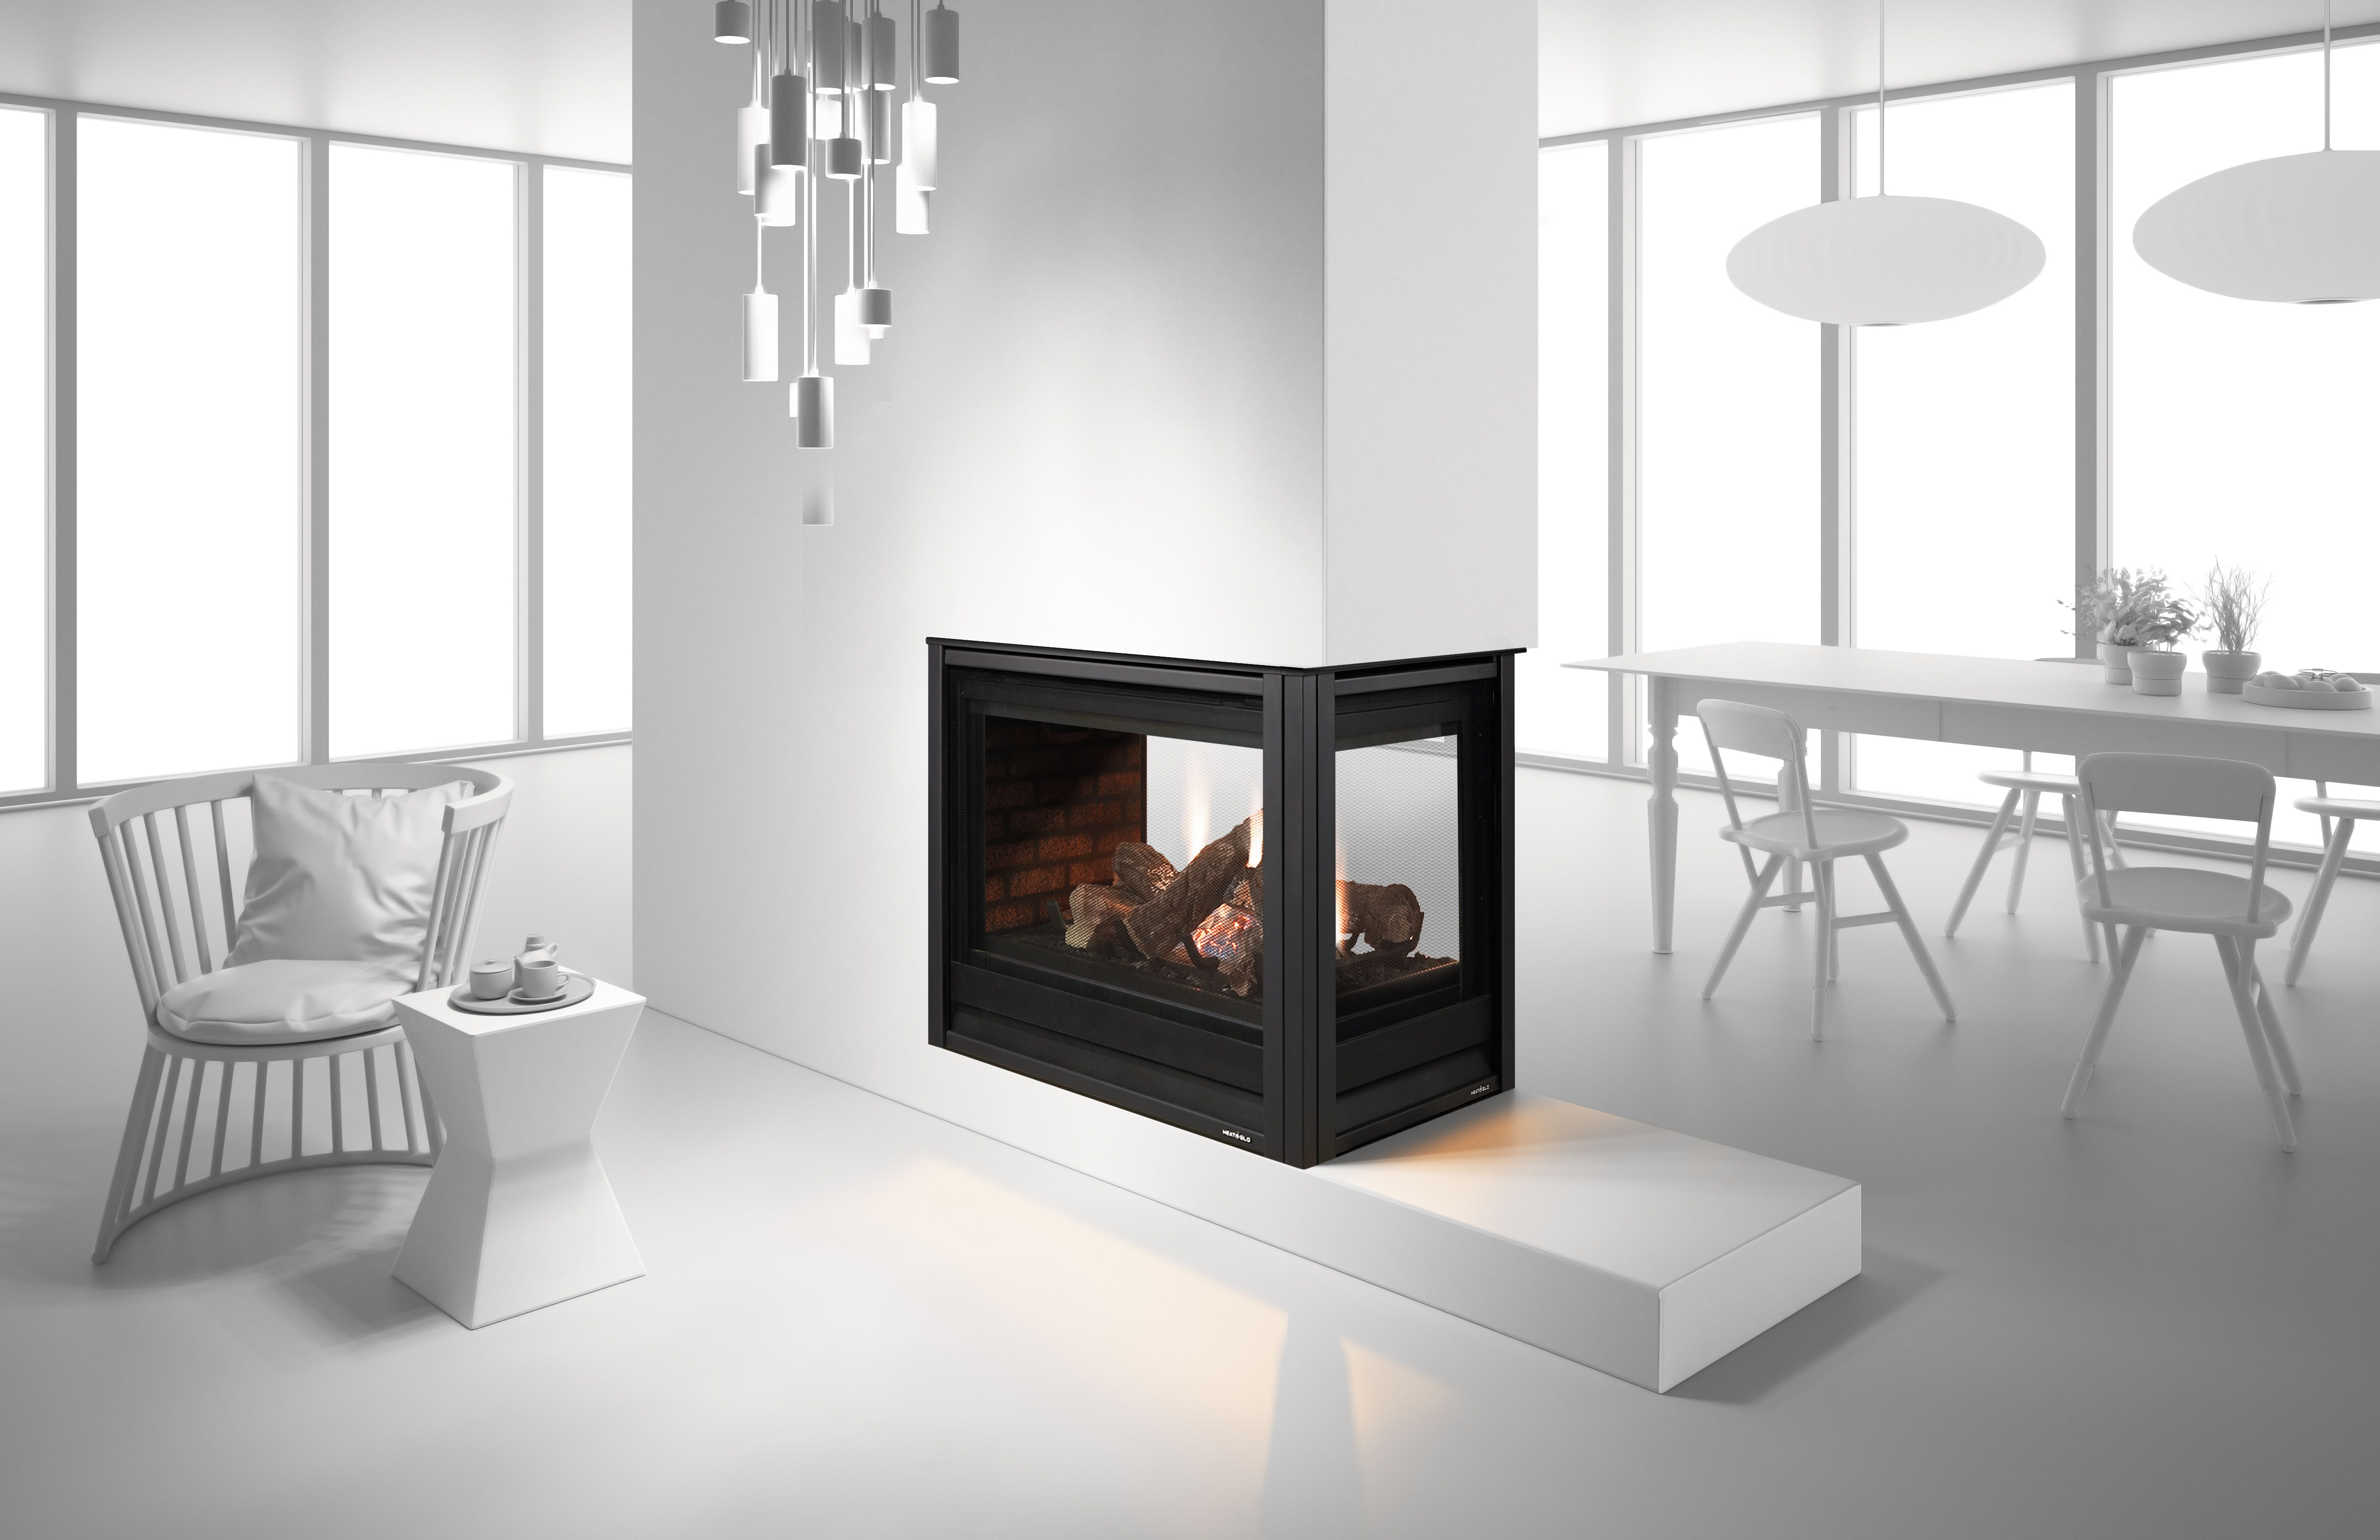 heat glo pier 36tr see through gas fireplace fabulous fireplaces rh pinterest com